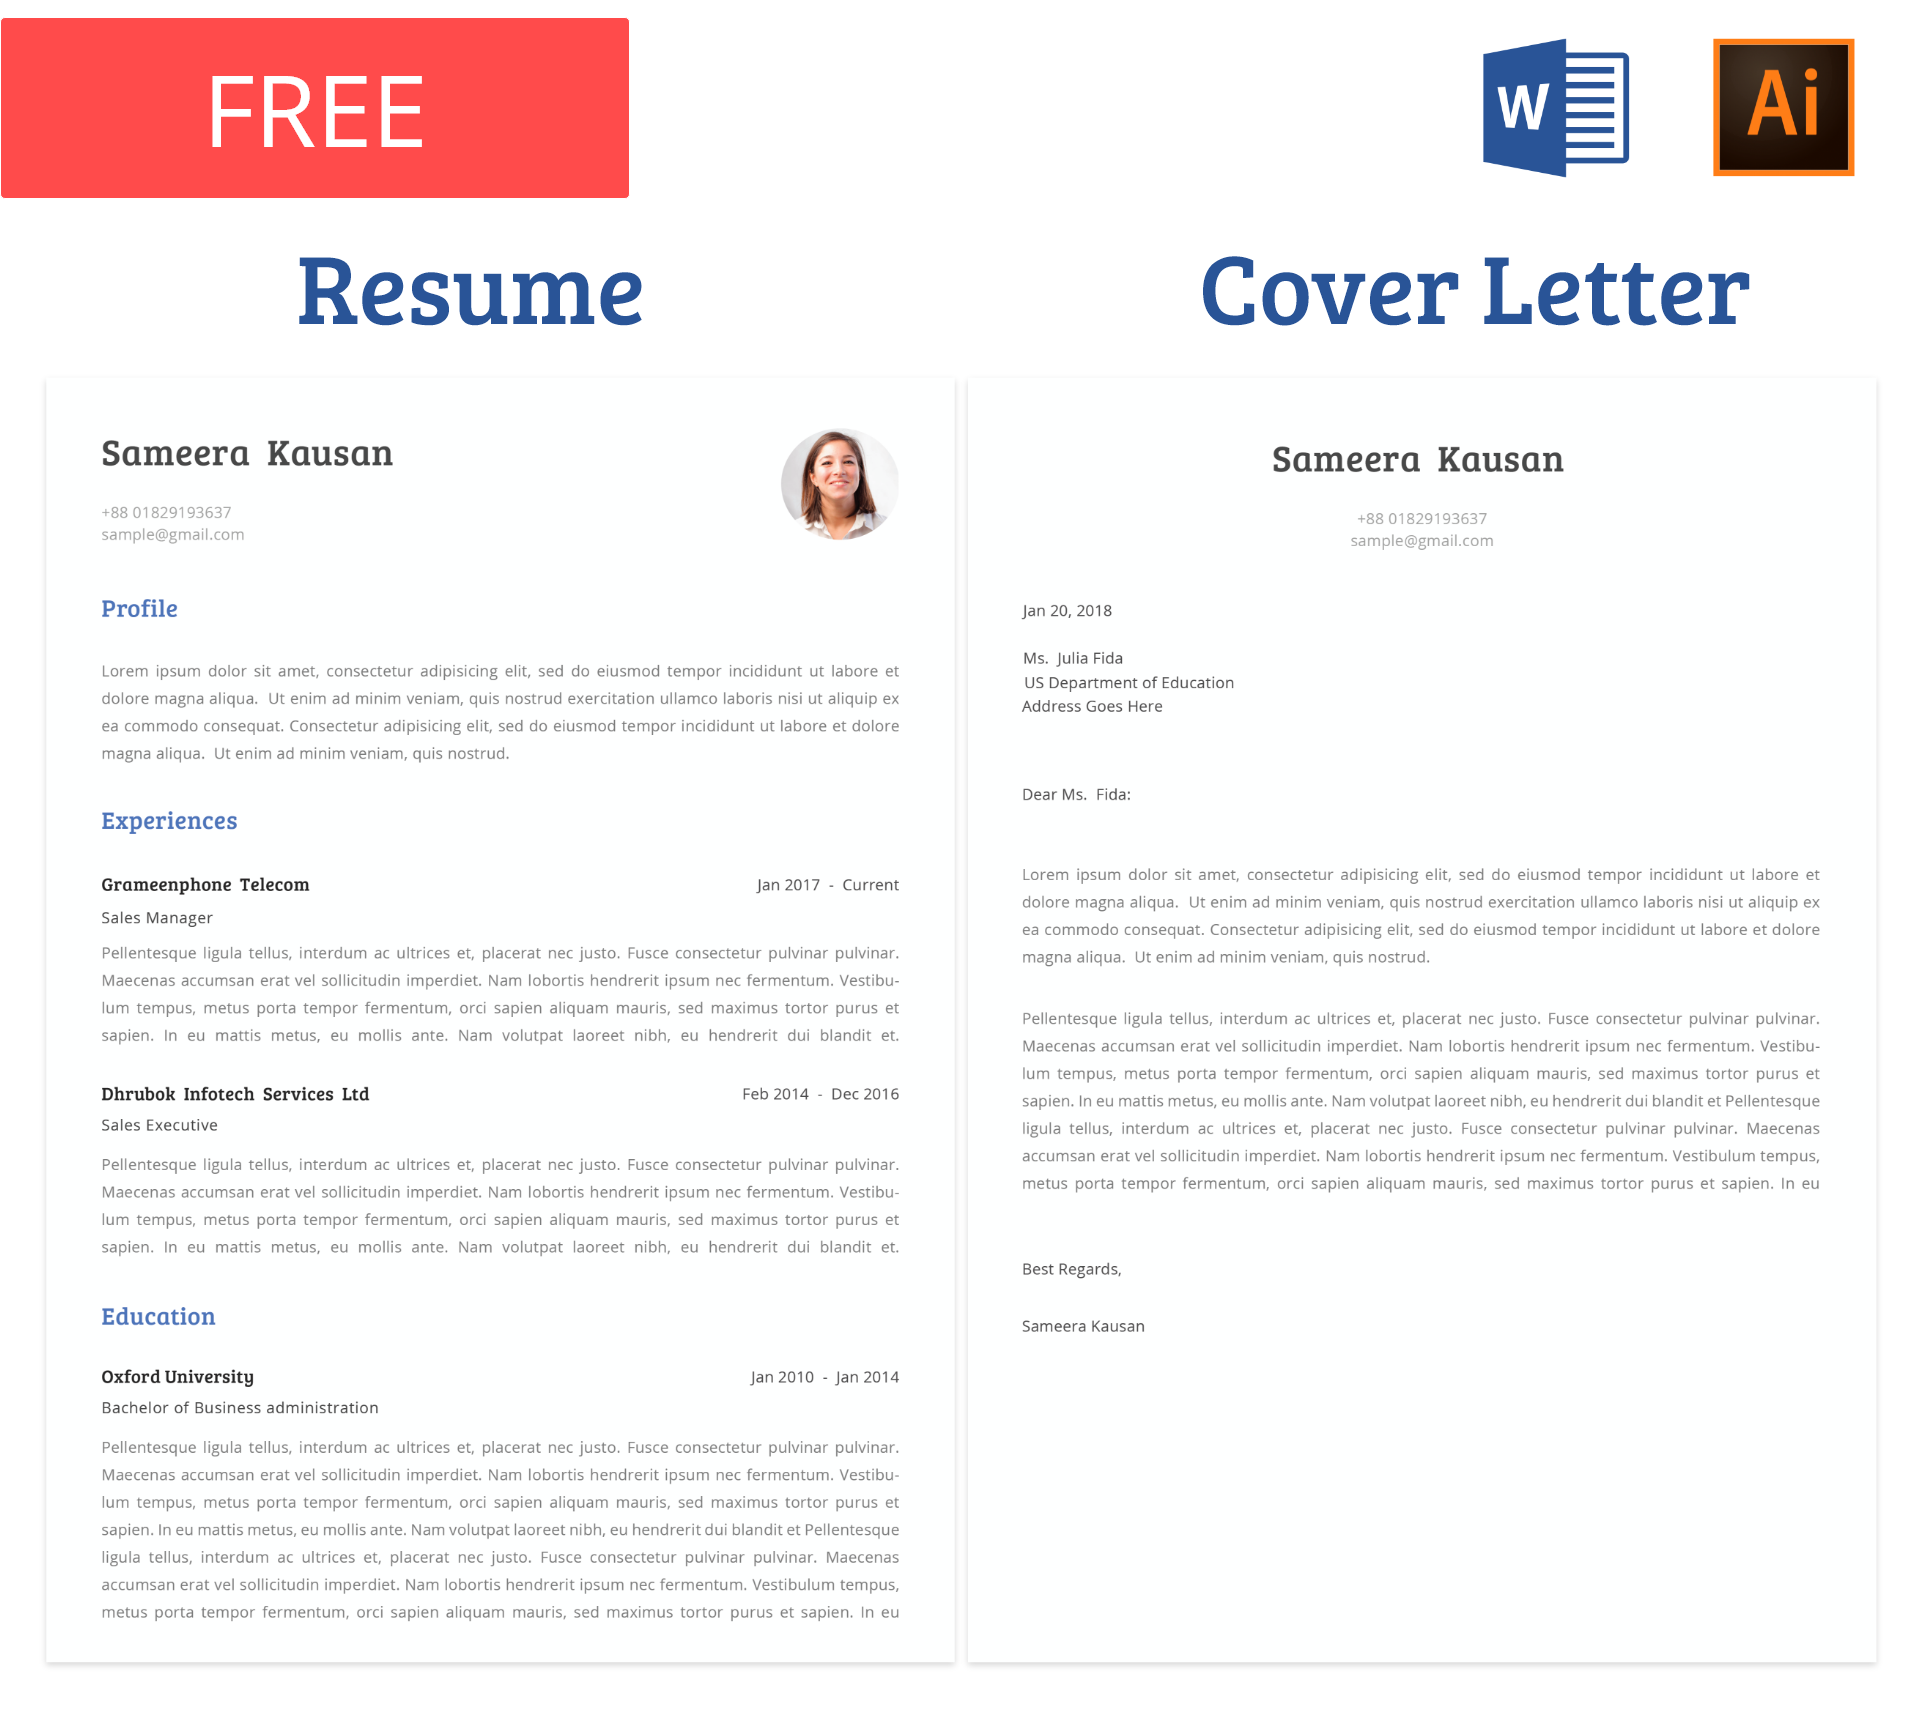 Free Resume template with cover letter. You can edit the